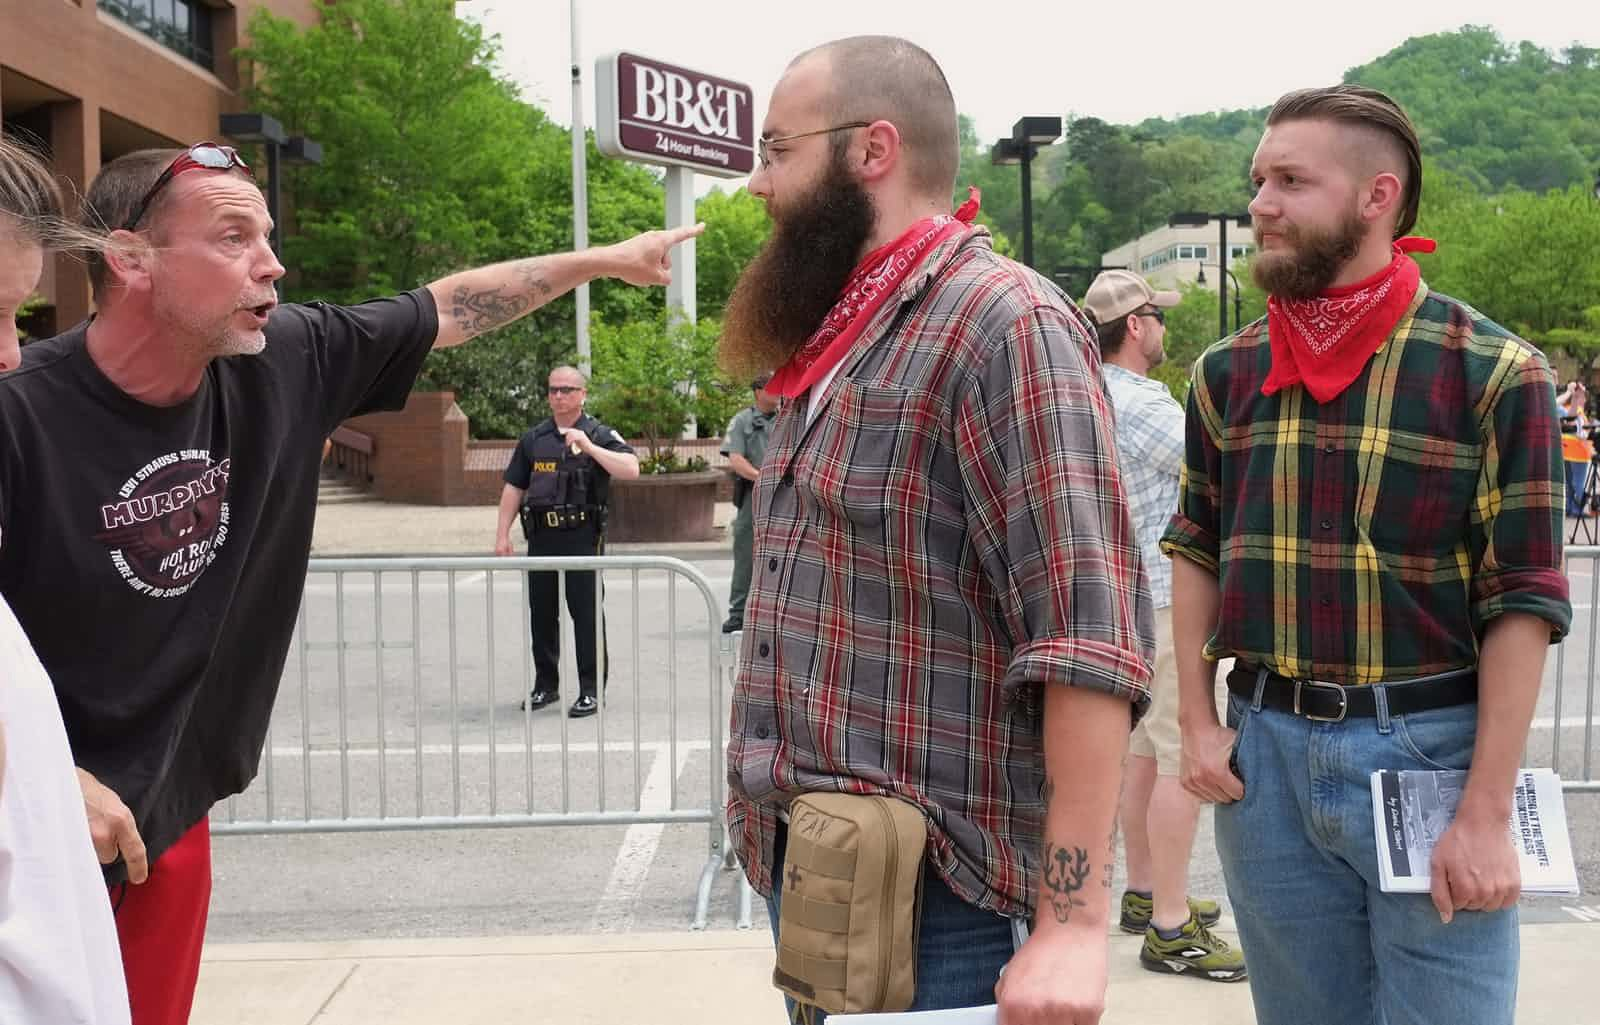 This Group Wants To Take Redneck Back From Fascists Racists